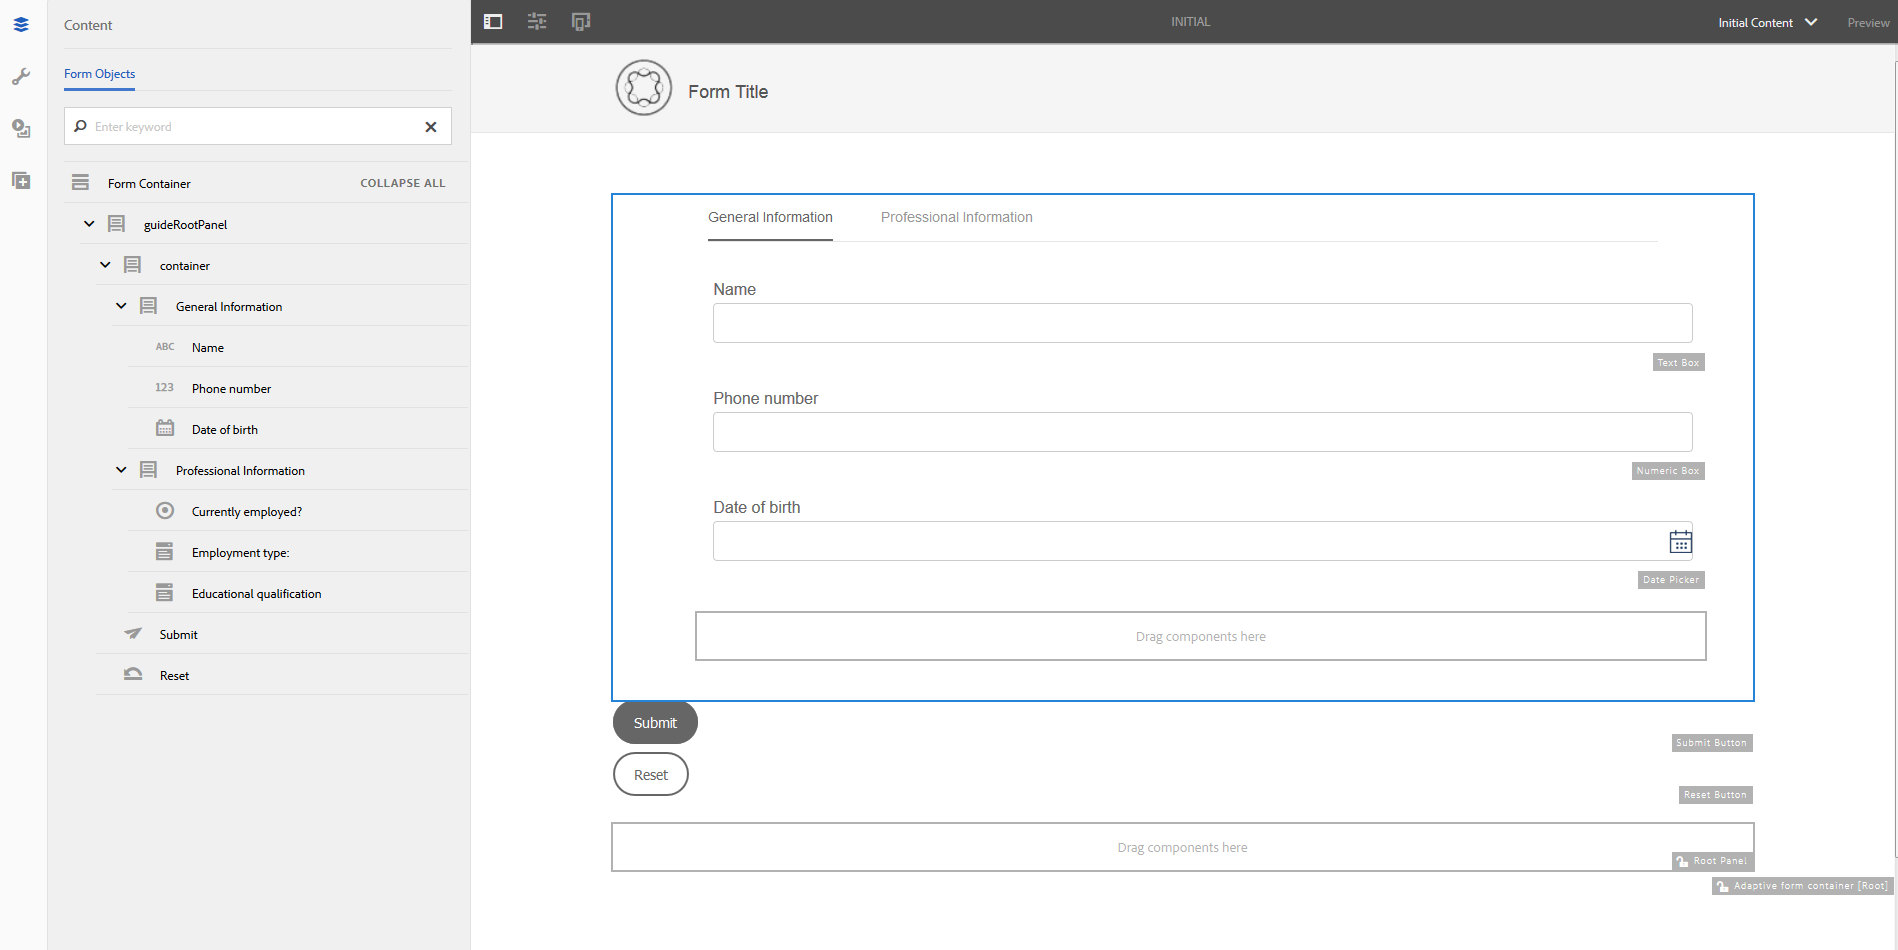 Adding fields in the adaptive form template